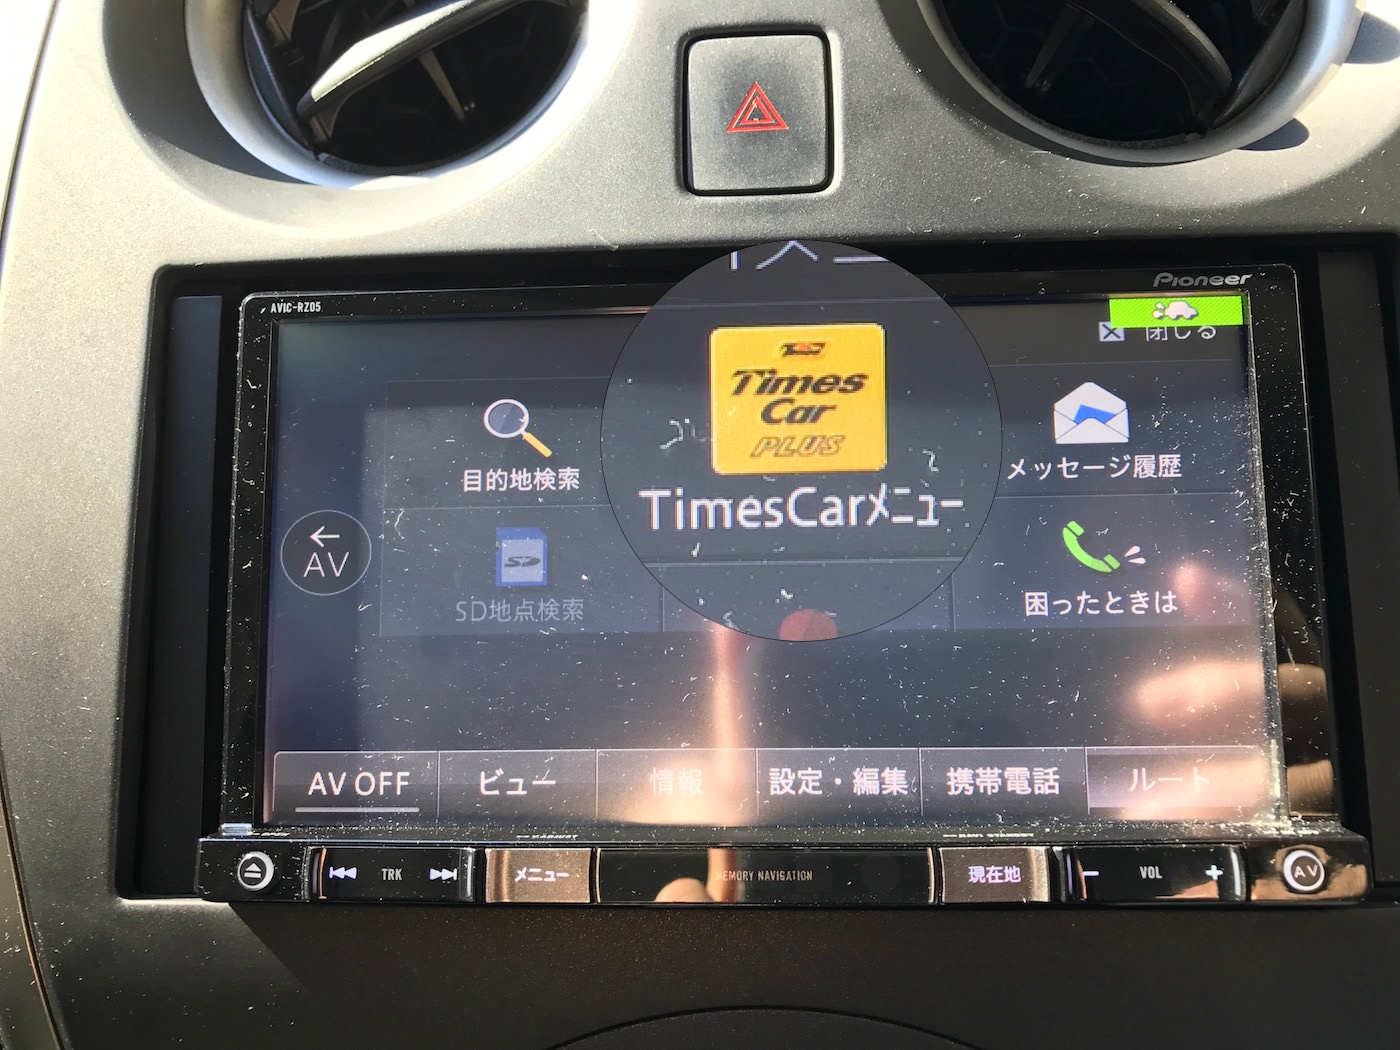 Lets use times car plus 00008